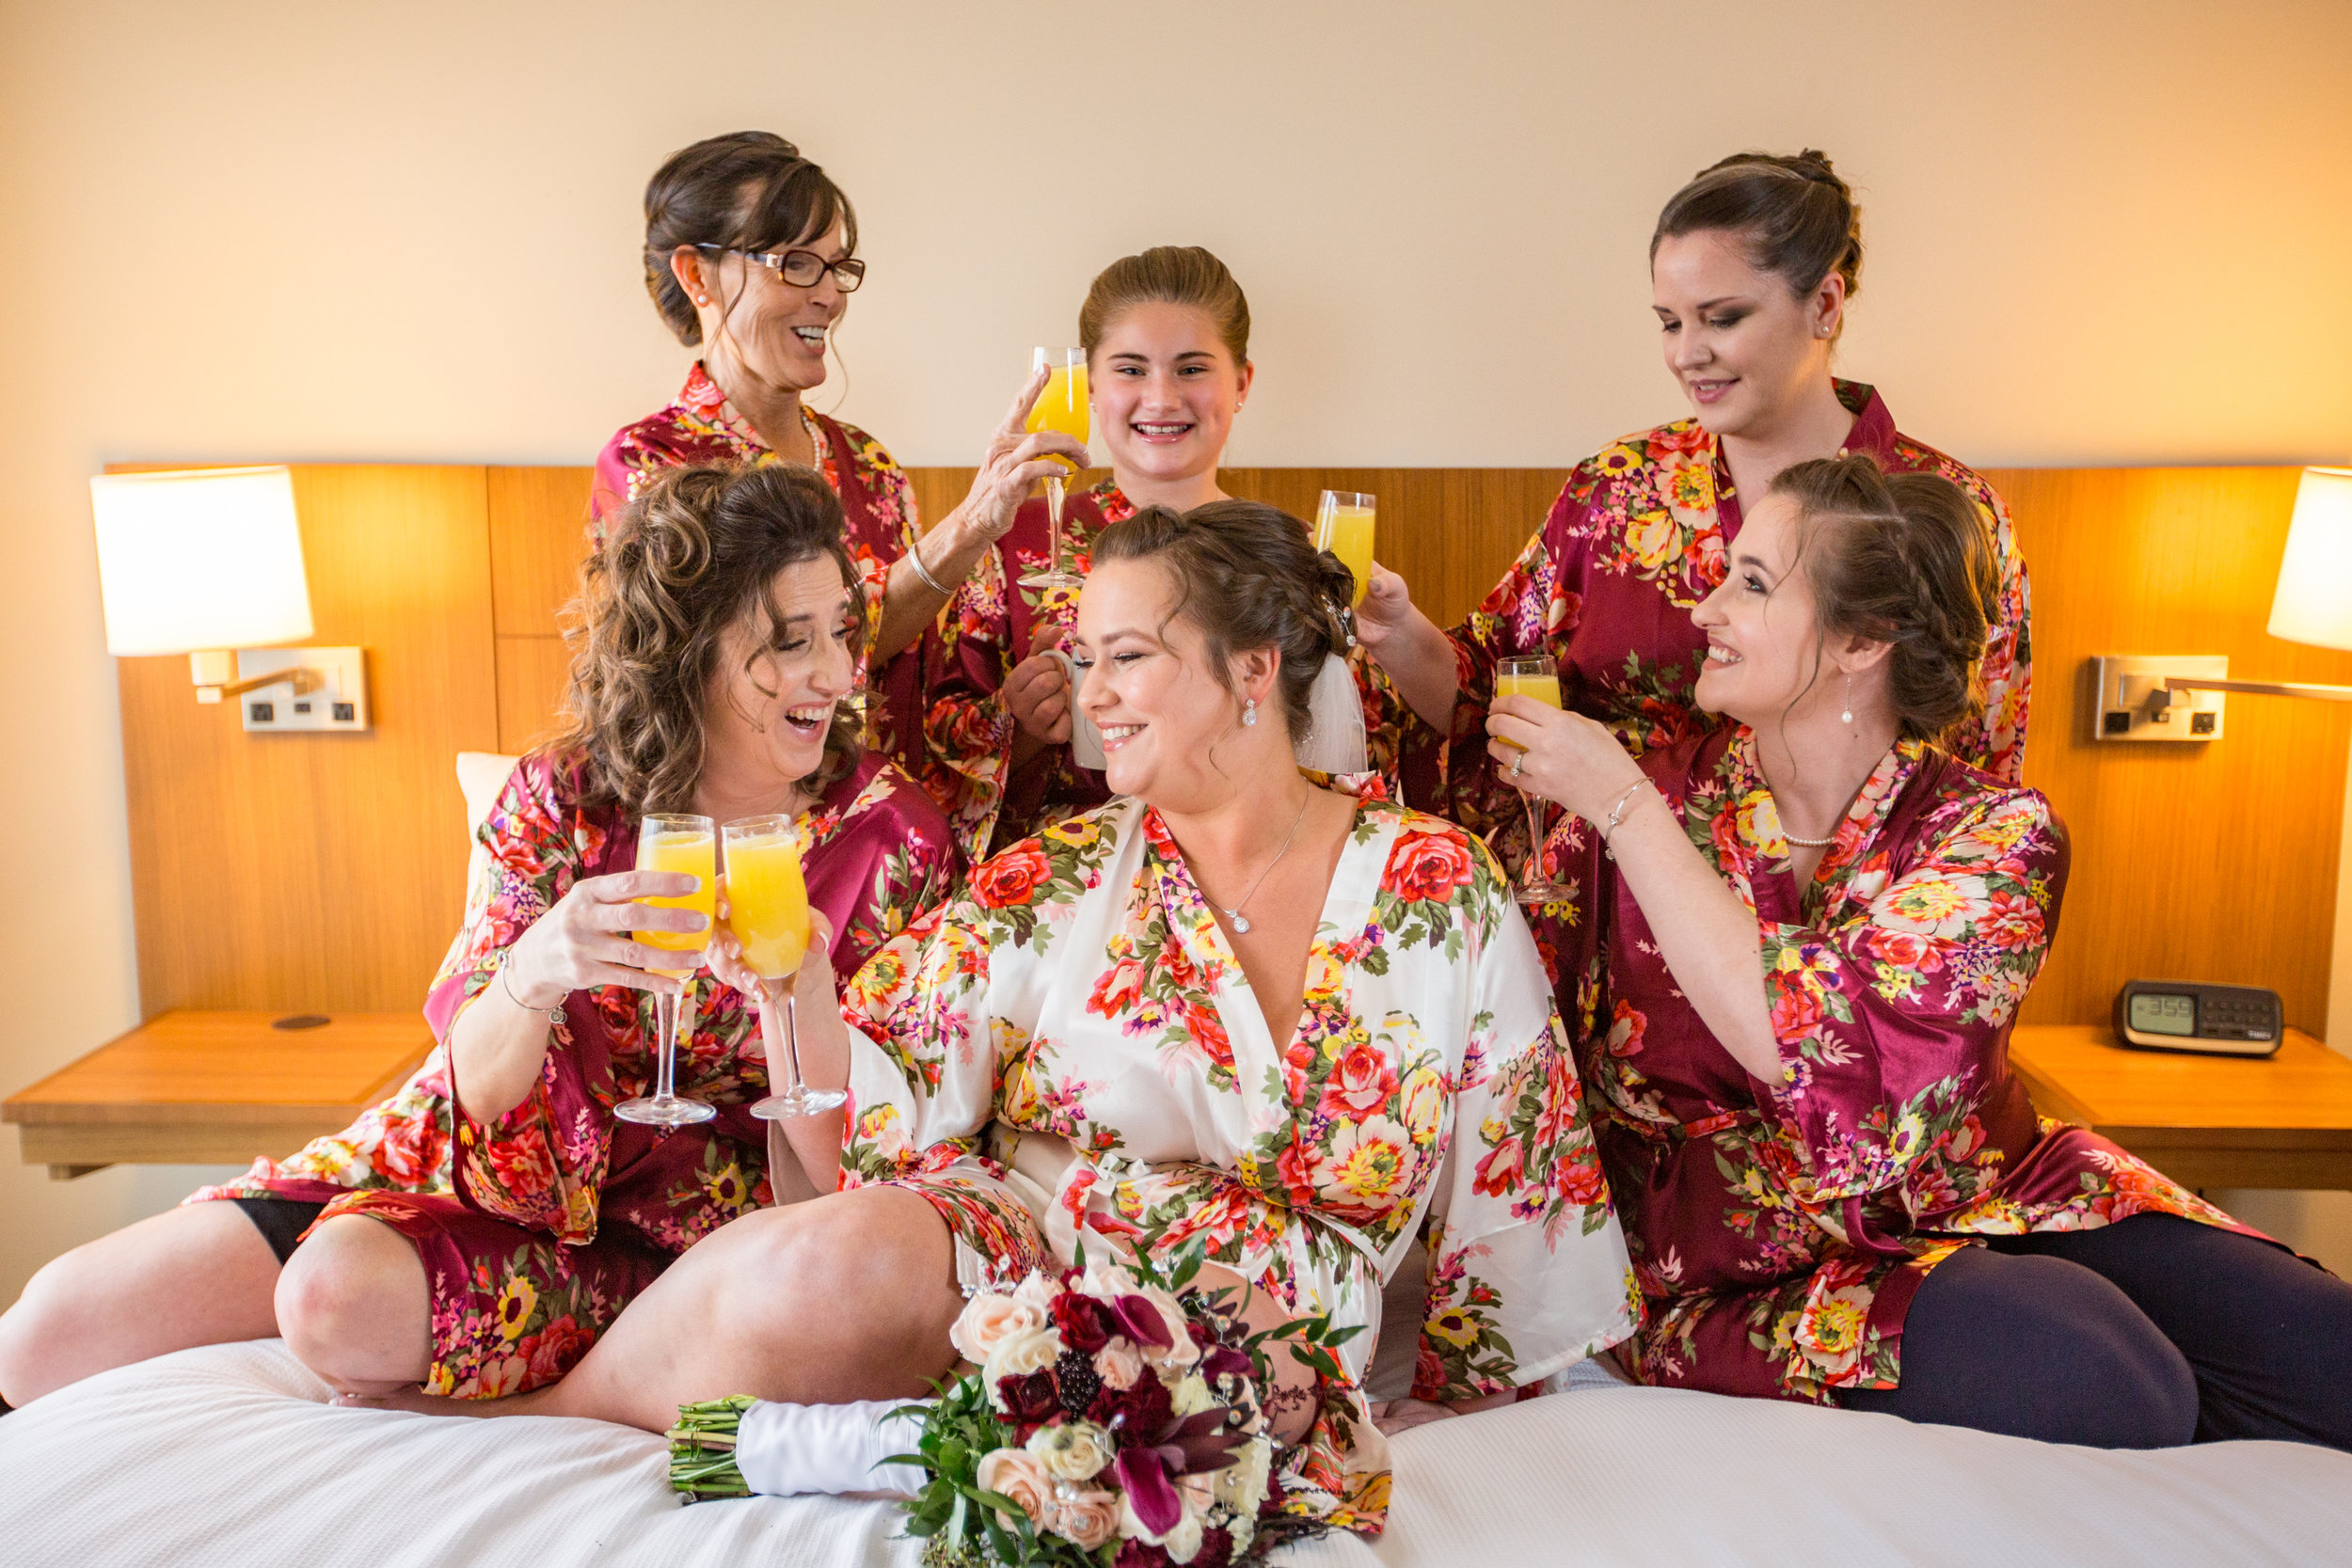 Jenna with her bridesmaids enjoy memosas in their gowns prior to getting ready for her big day in Ocean City, MD.